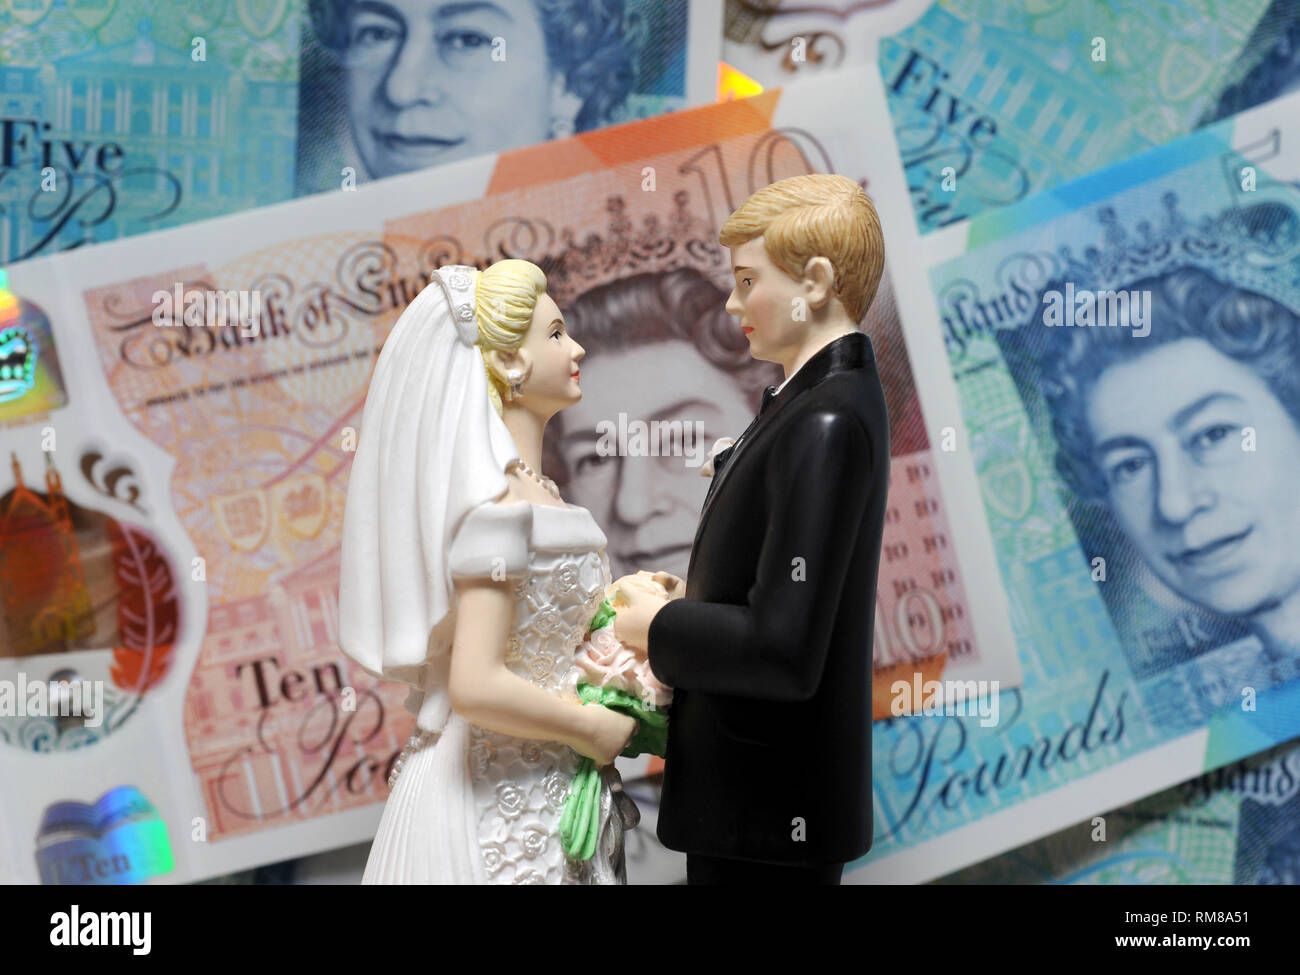 BRIDE AND GROOM FIGURES WITH BRITISH BANKNOTES RE WEDDING COSTS MARRIAGE DIVORCE LAWYERS FIRST TIME HOUSE BUYERS ETC UK - Stock Image